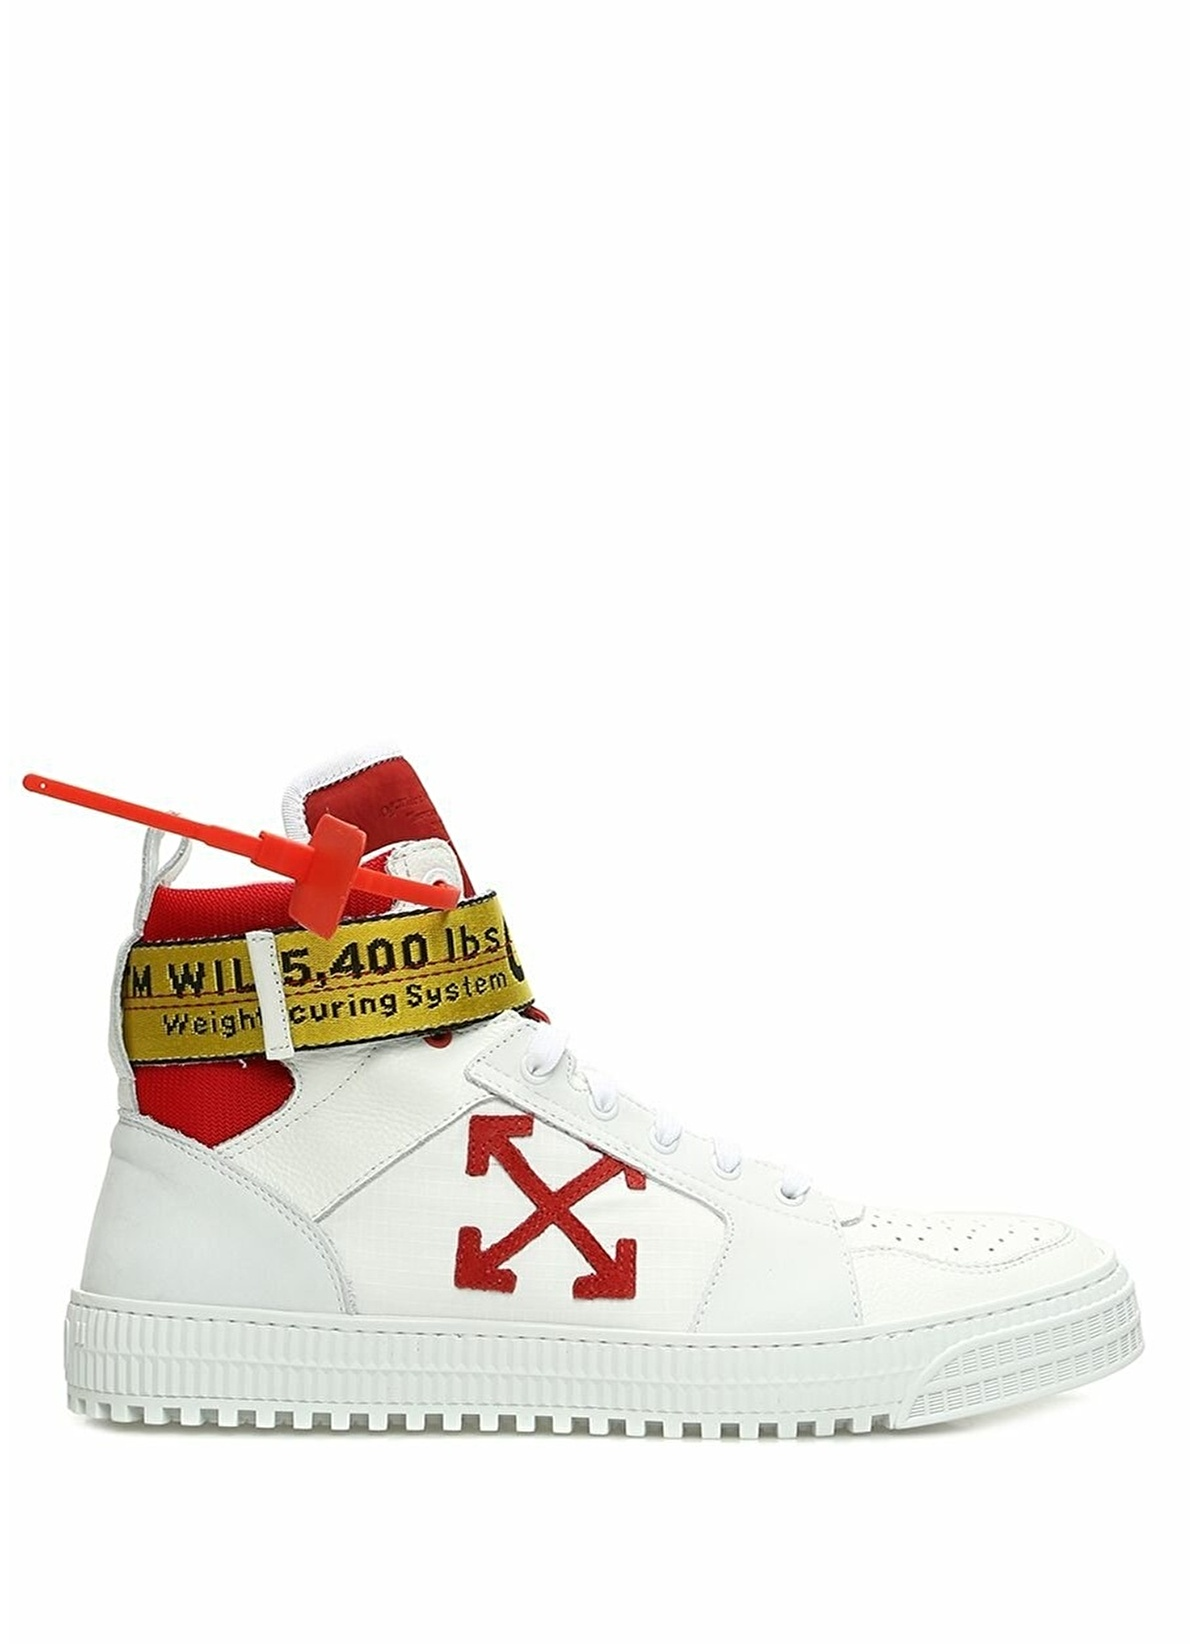 Off-white Sneakers 101384396 E Sneakers – 4299.0 TL